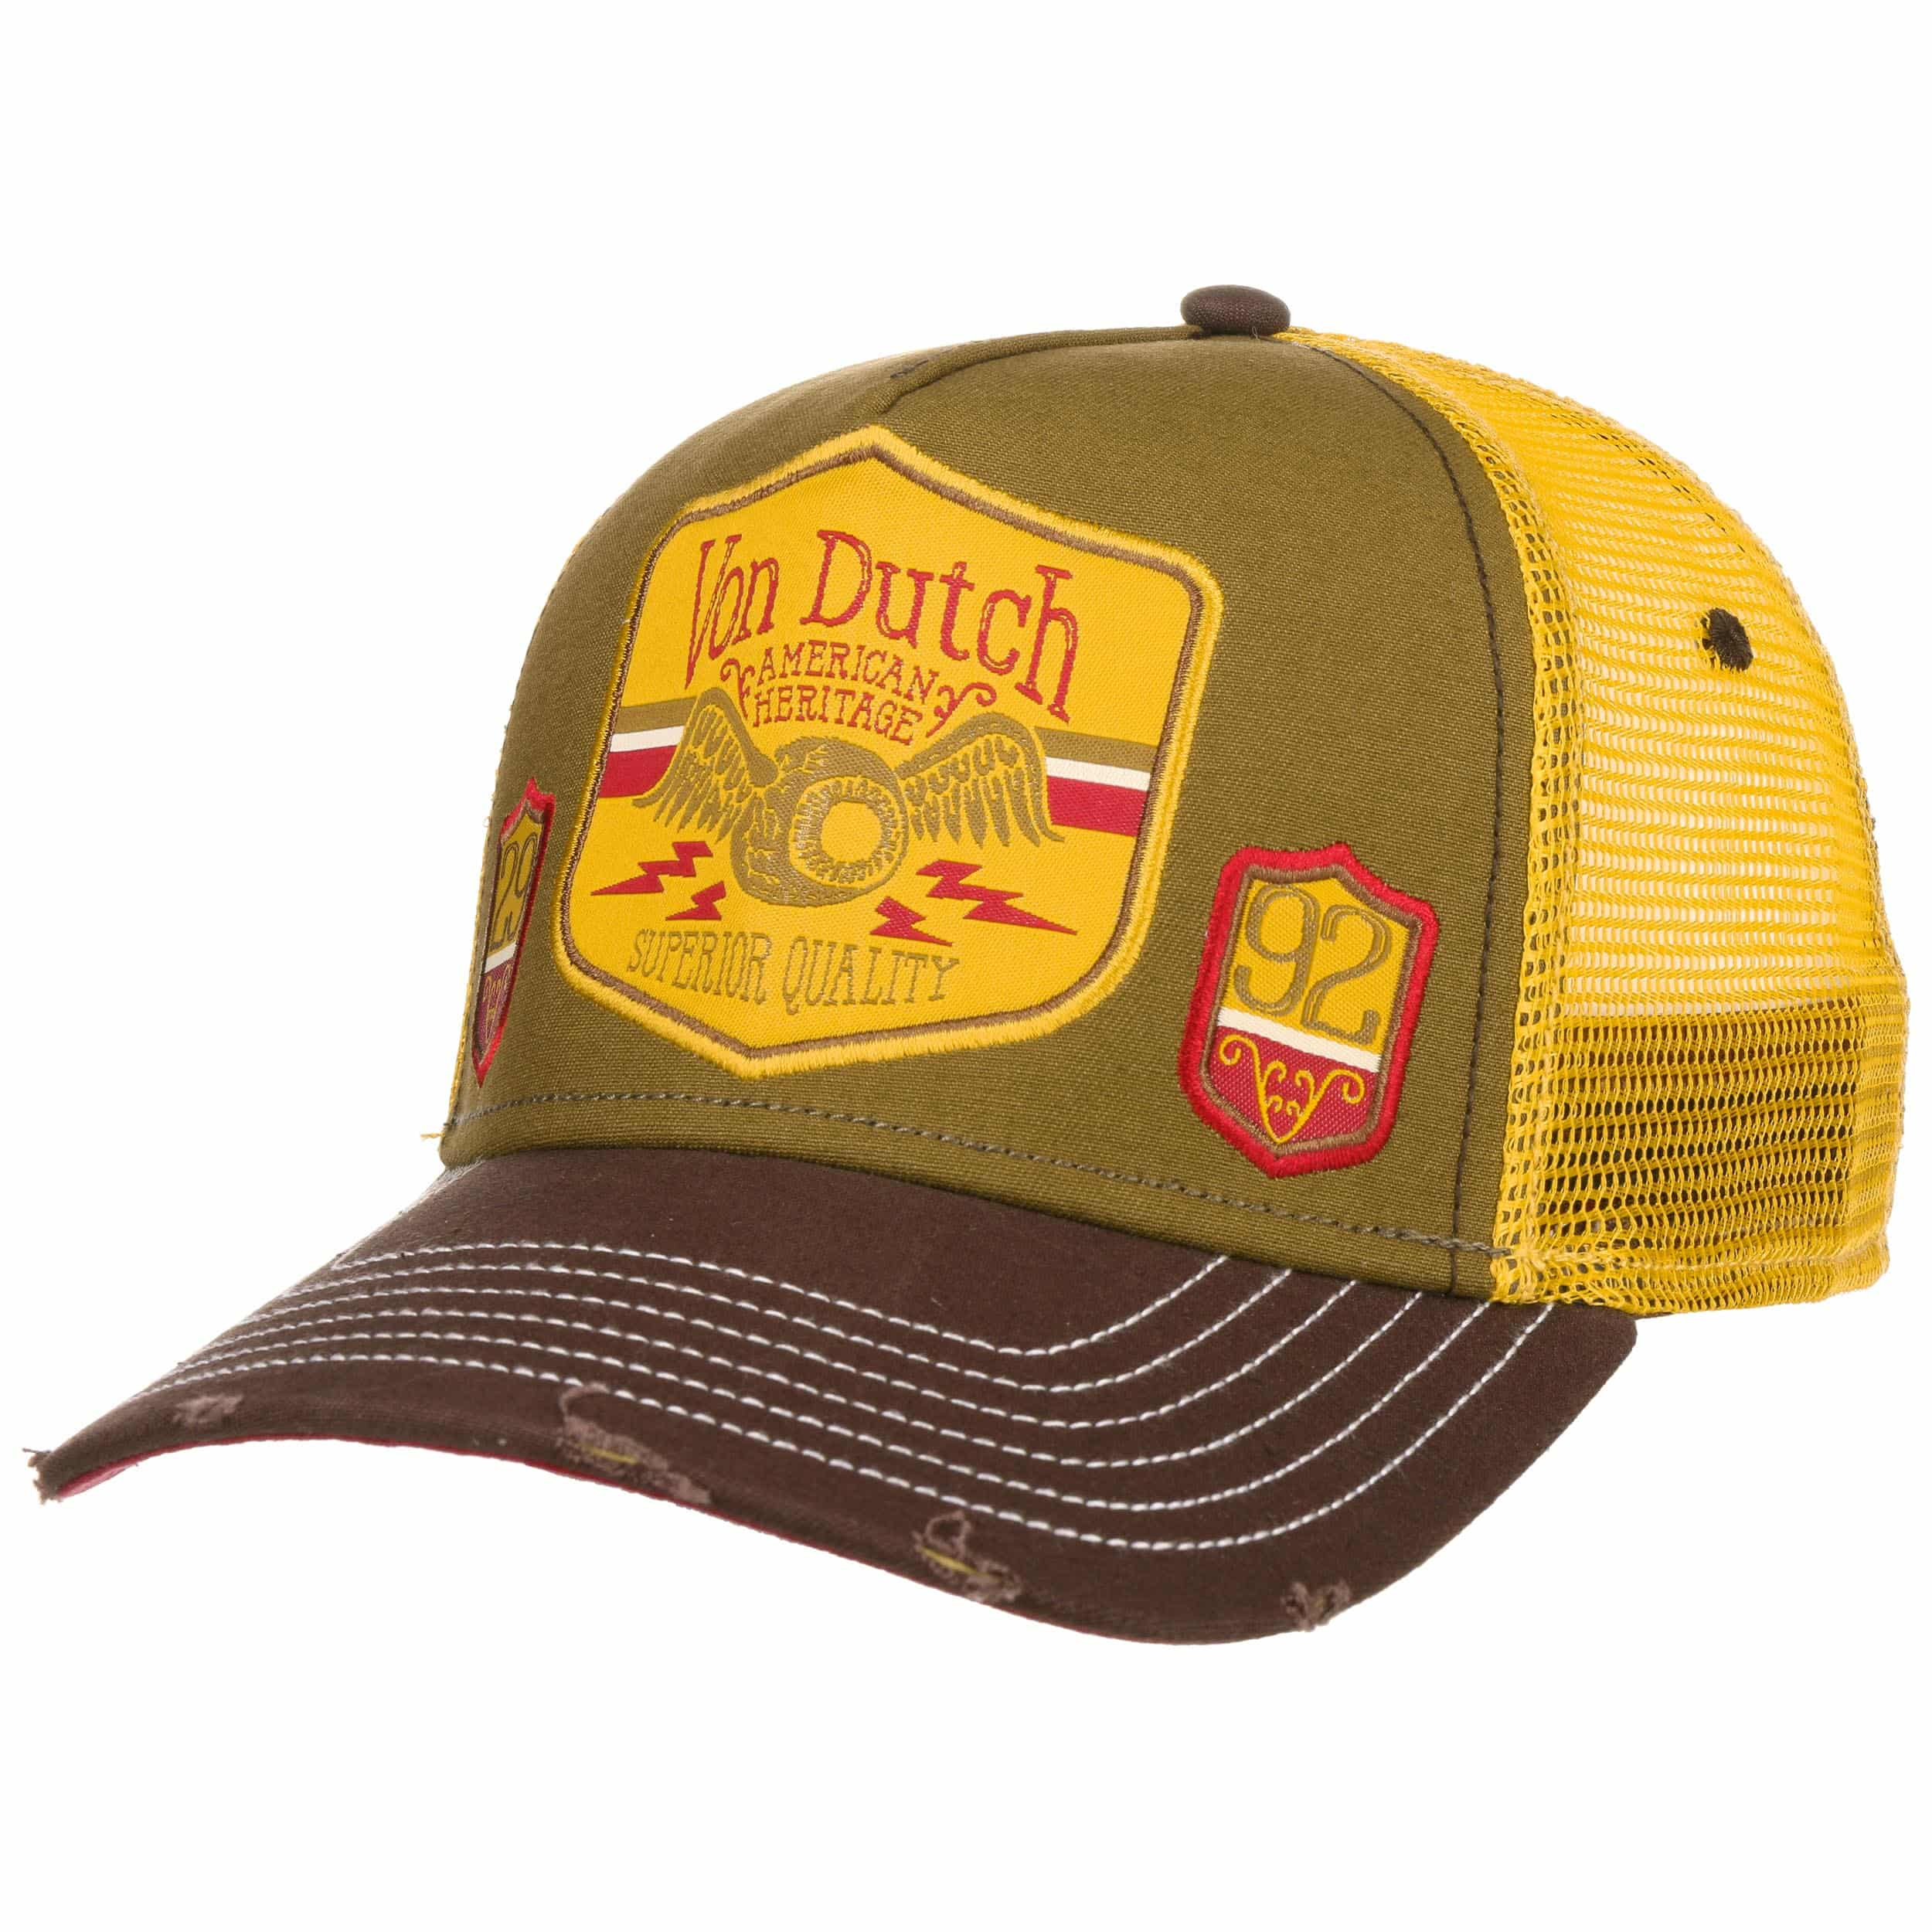 c829cfedcab8e ... Premium Trucker Cap by Von Dutch - olive 6 ...